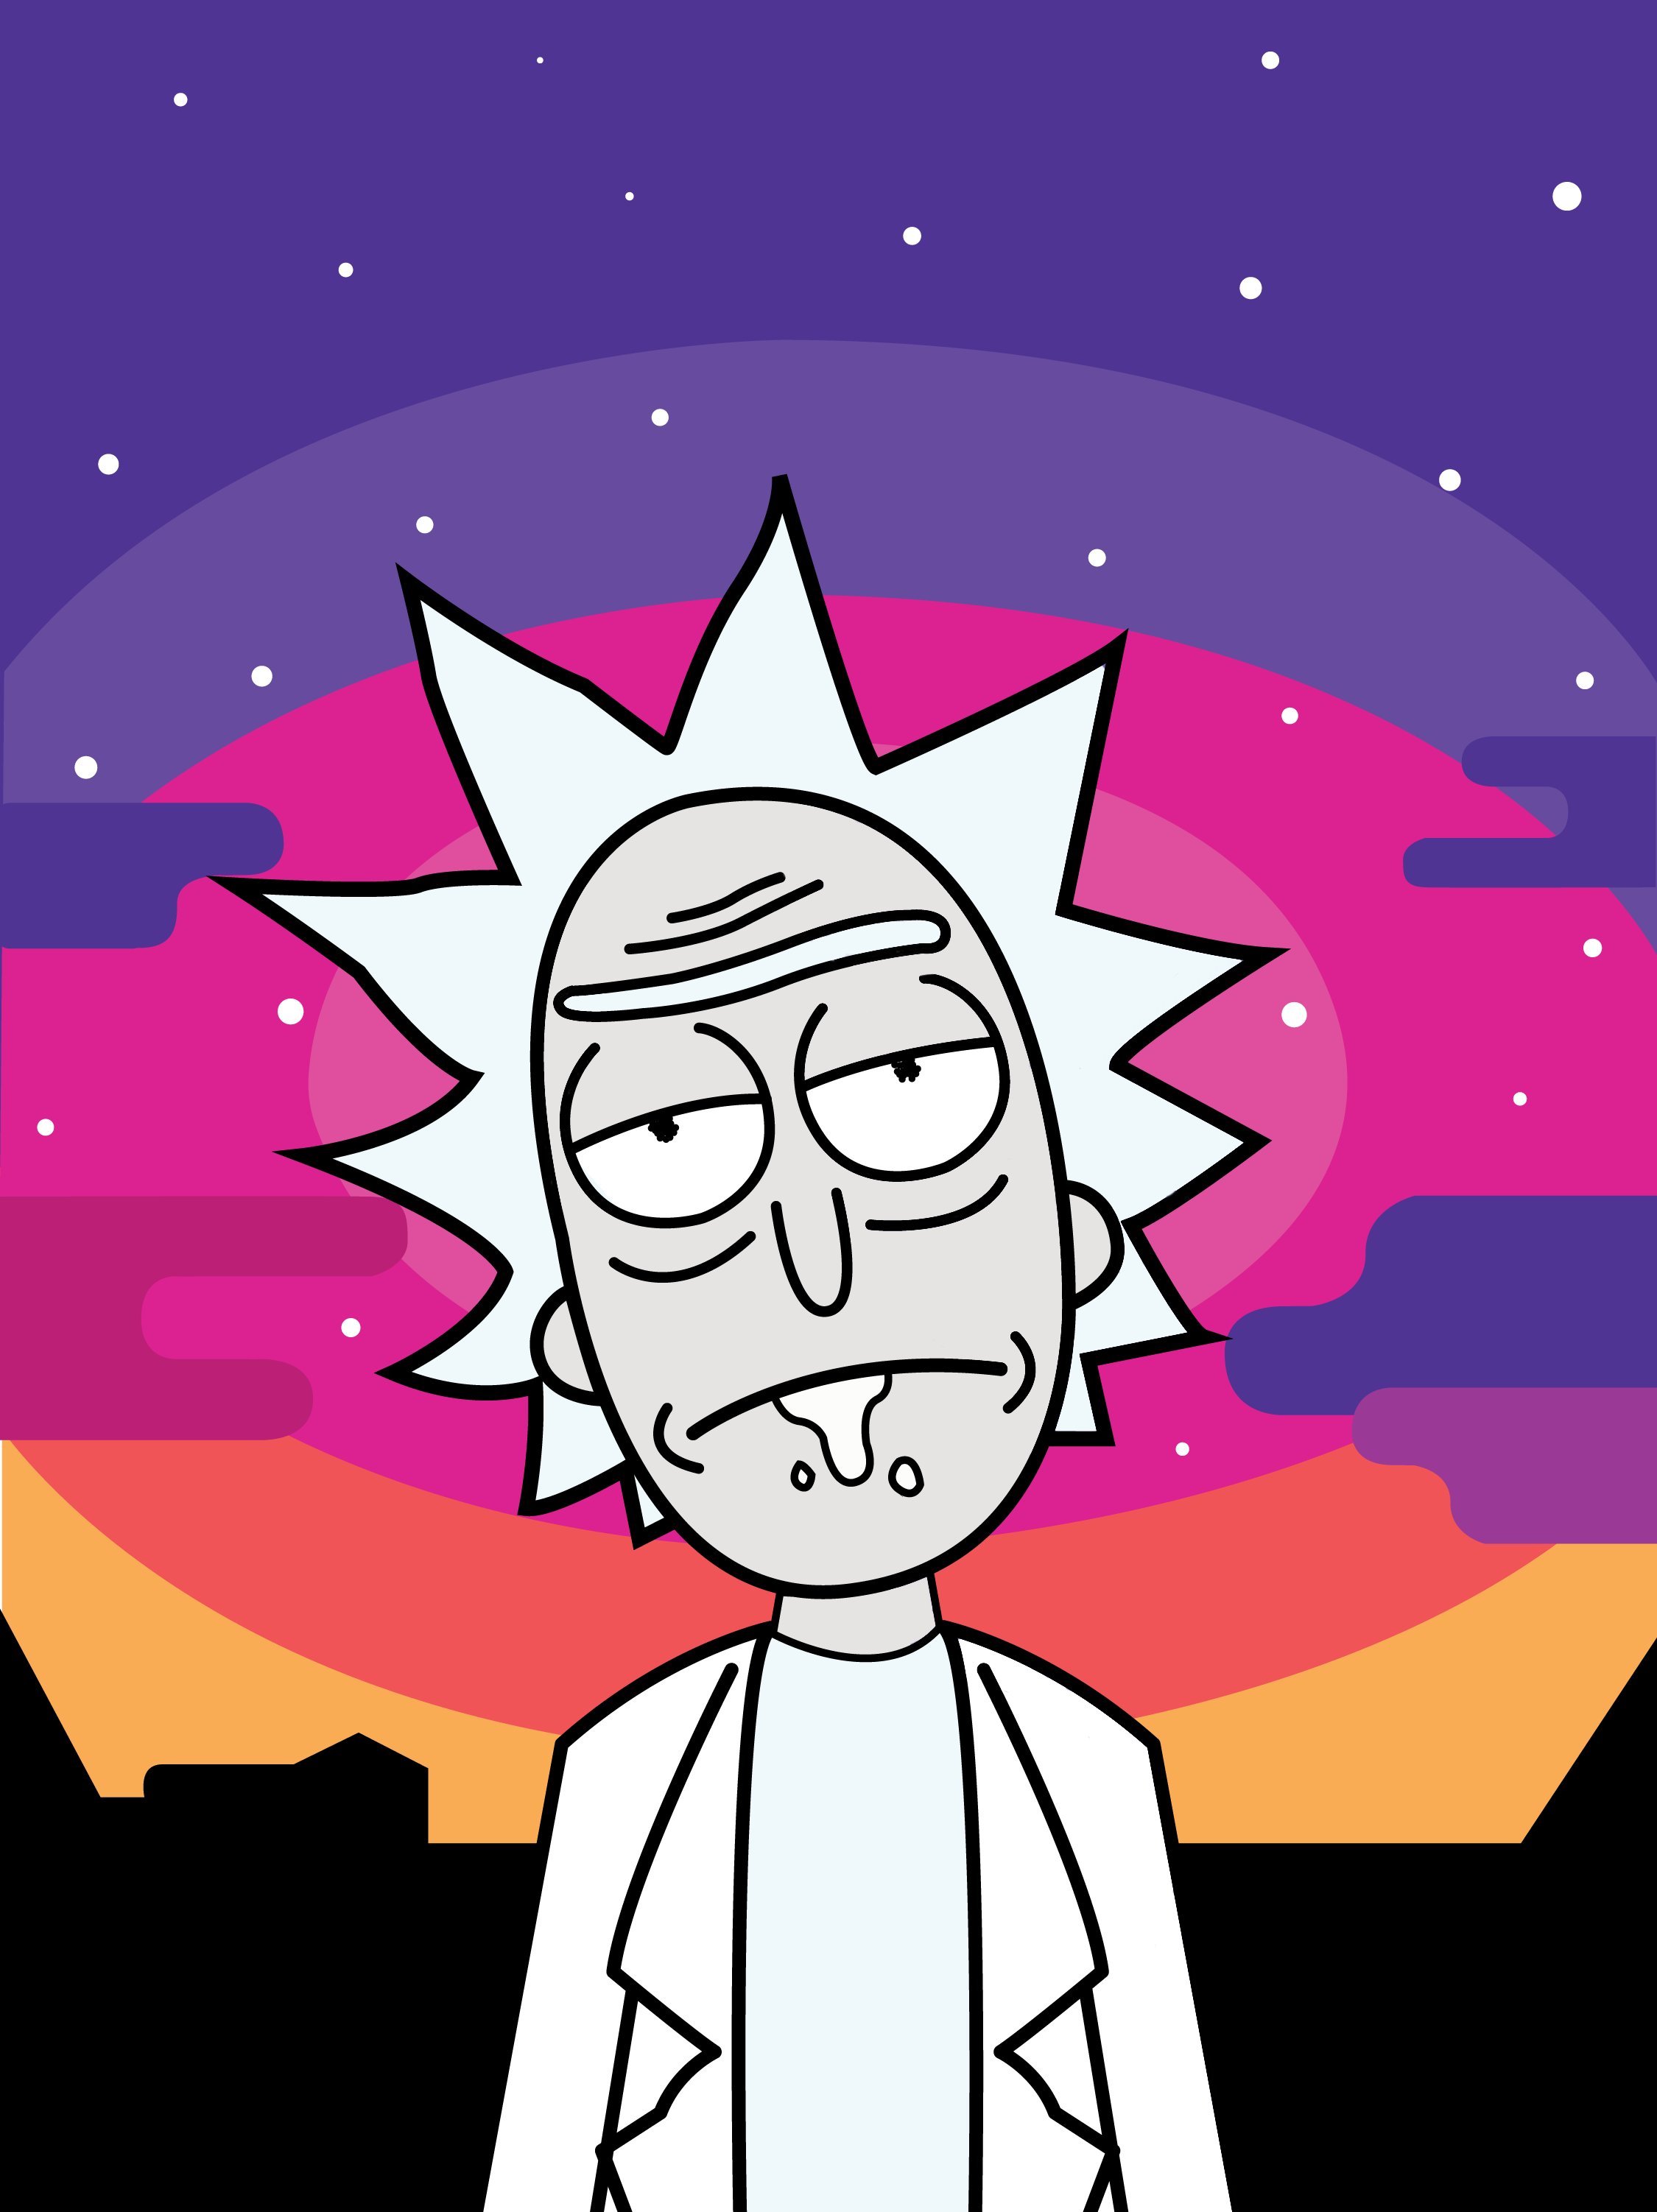 Sad Rick And Morty Wallpapers Top Free Sad Rick And Morty